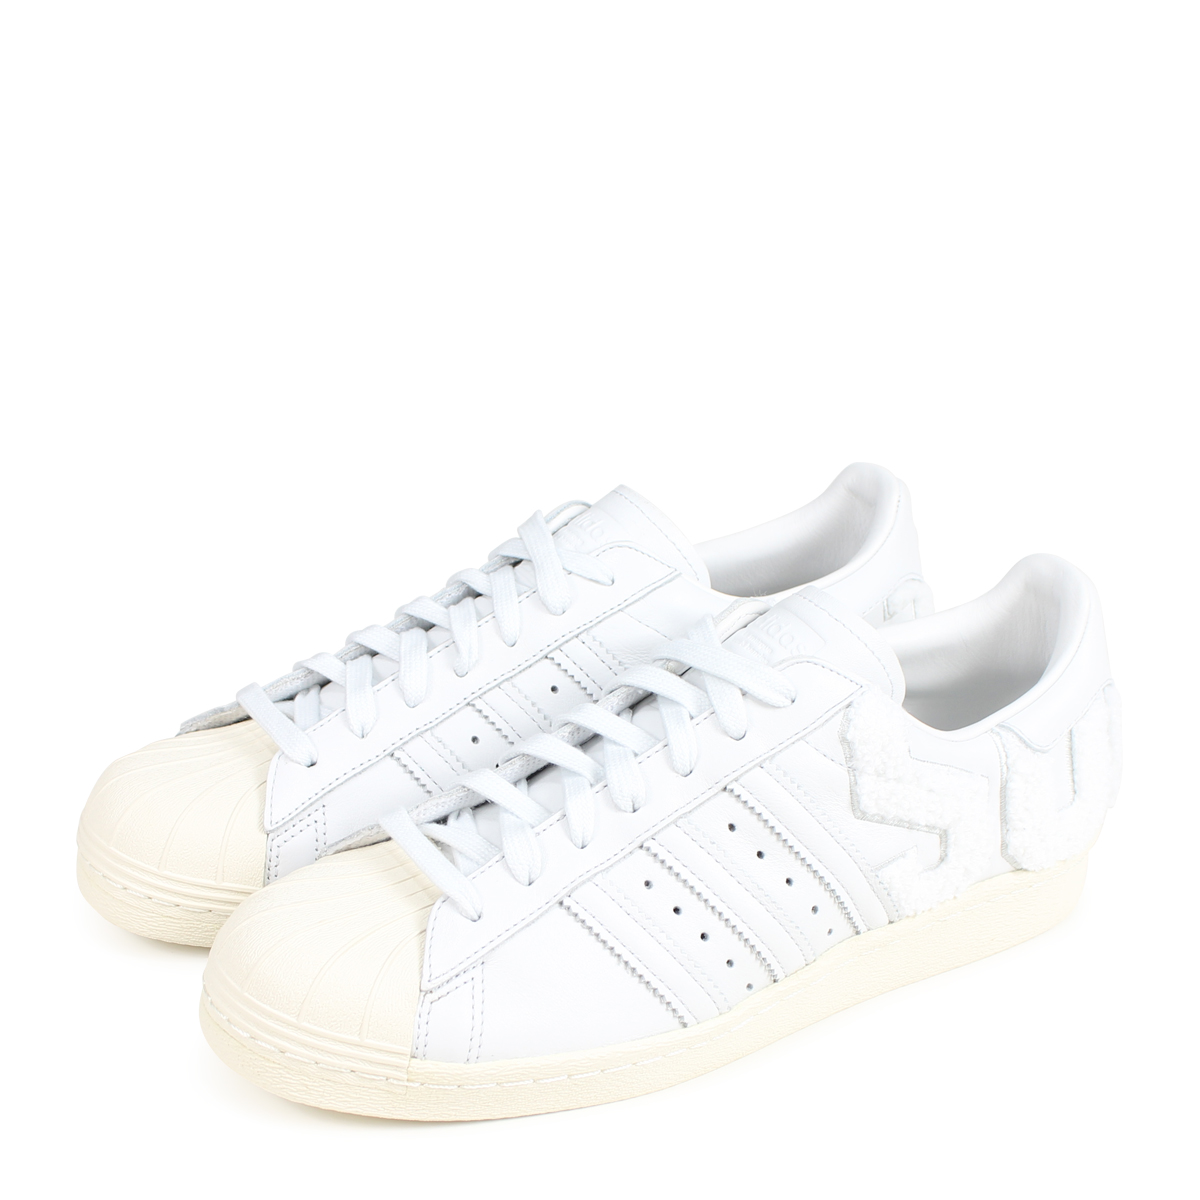 ALLSPORTS: Adidas superstar sneakers adidas originals men